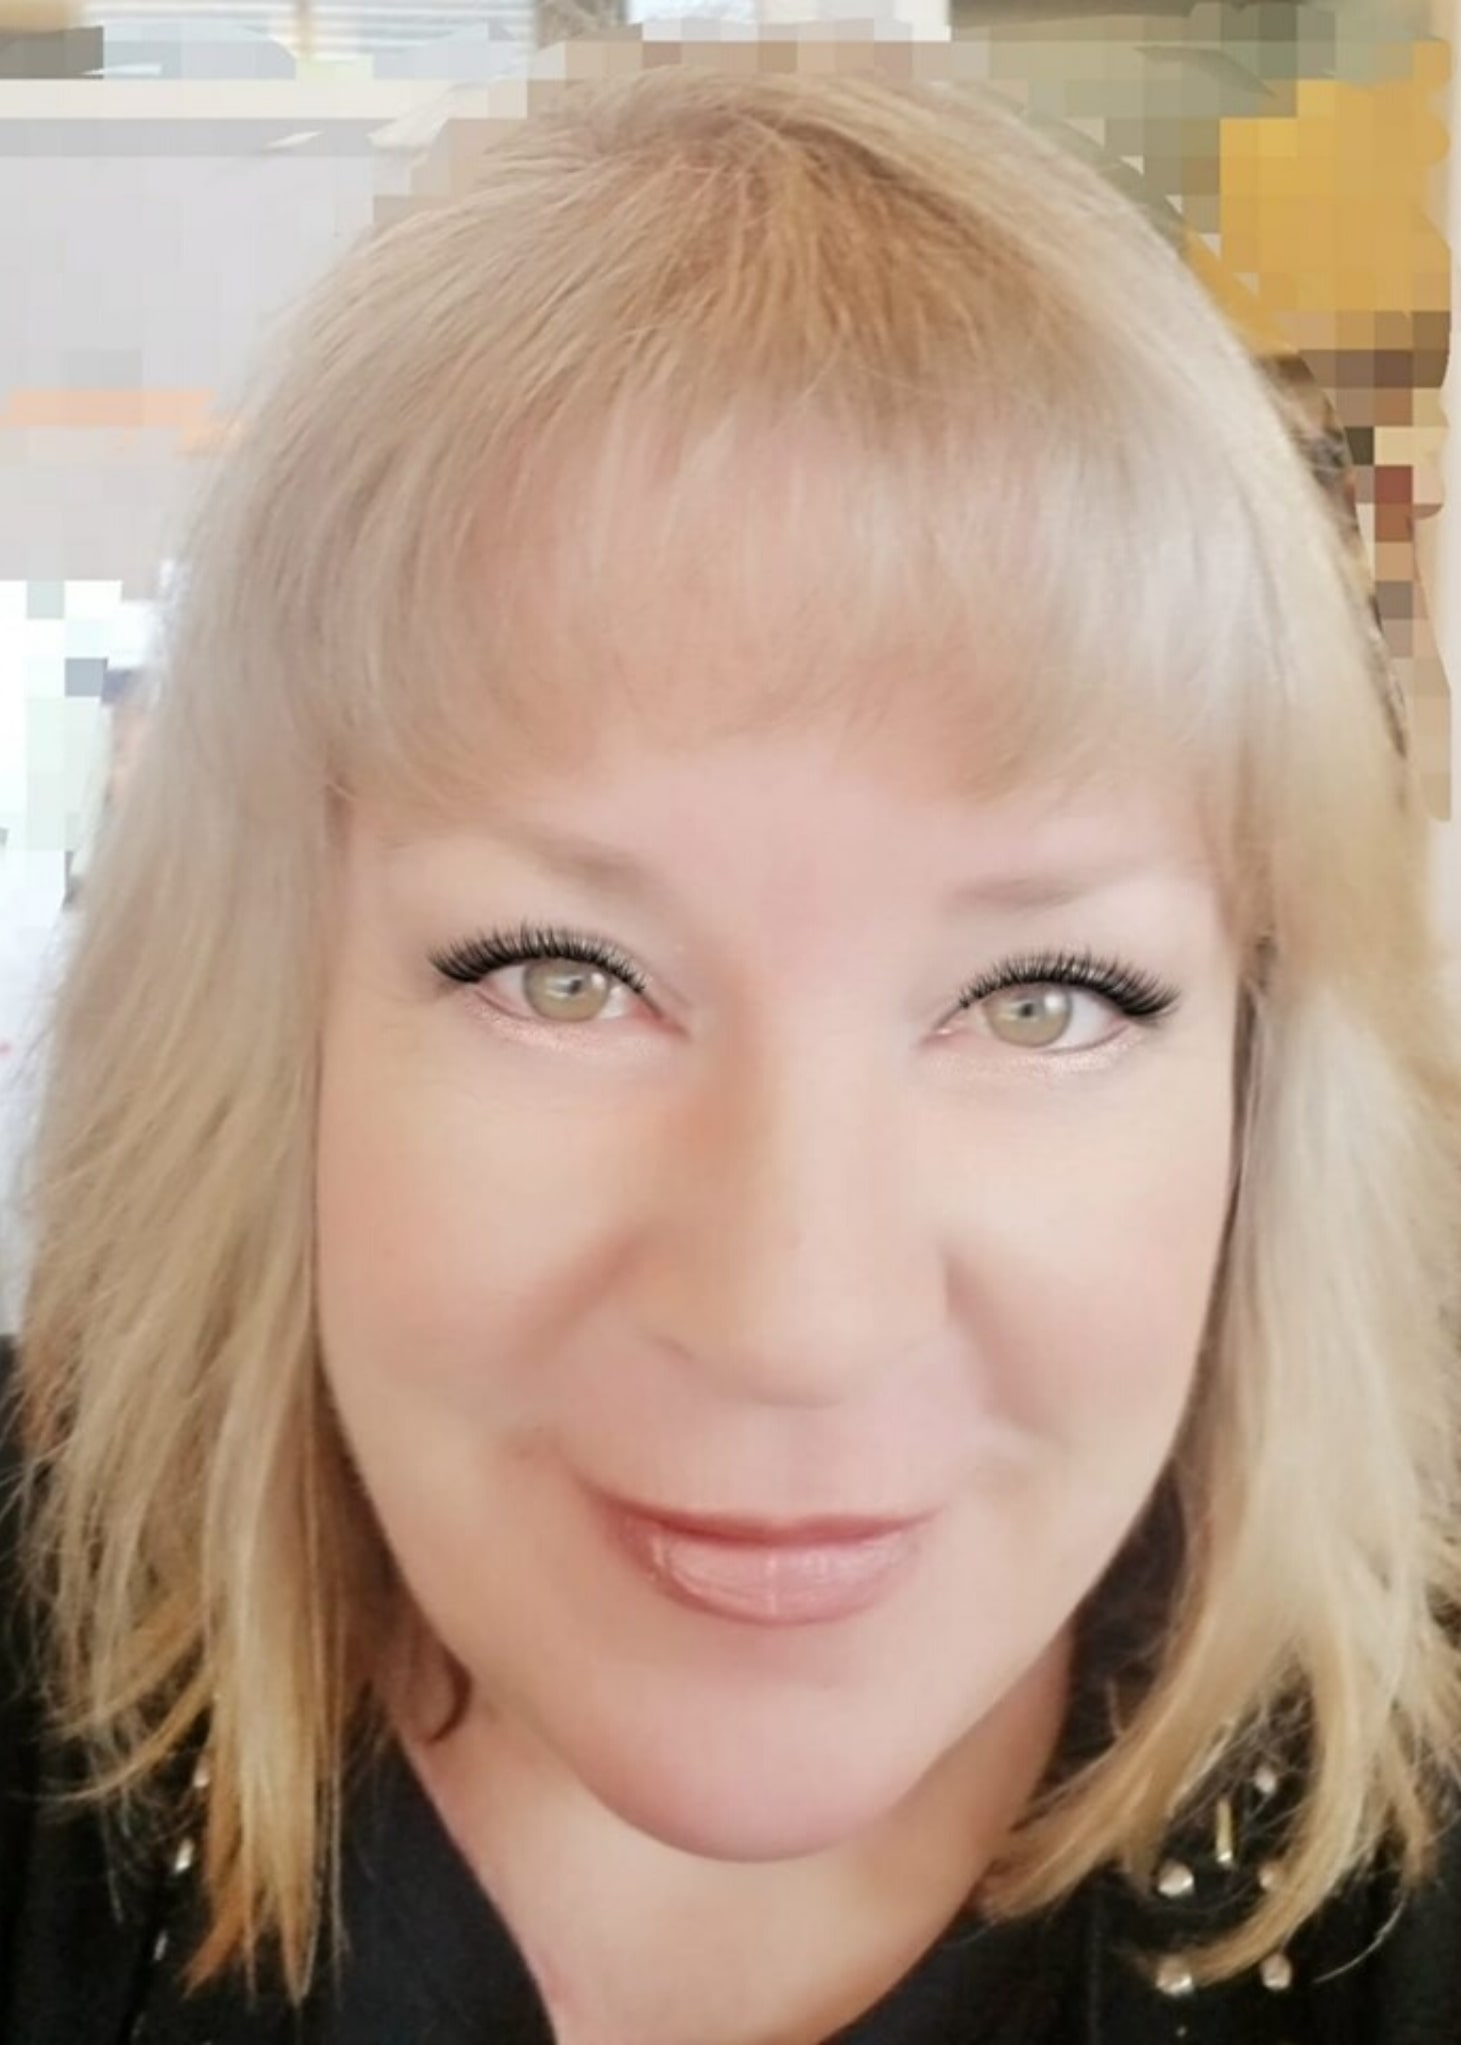 Elizabeth Steele, Windermere, Real estate, Whidbey Island, Homes, Buy, Sell, Invest, Freeland, trusted realtor